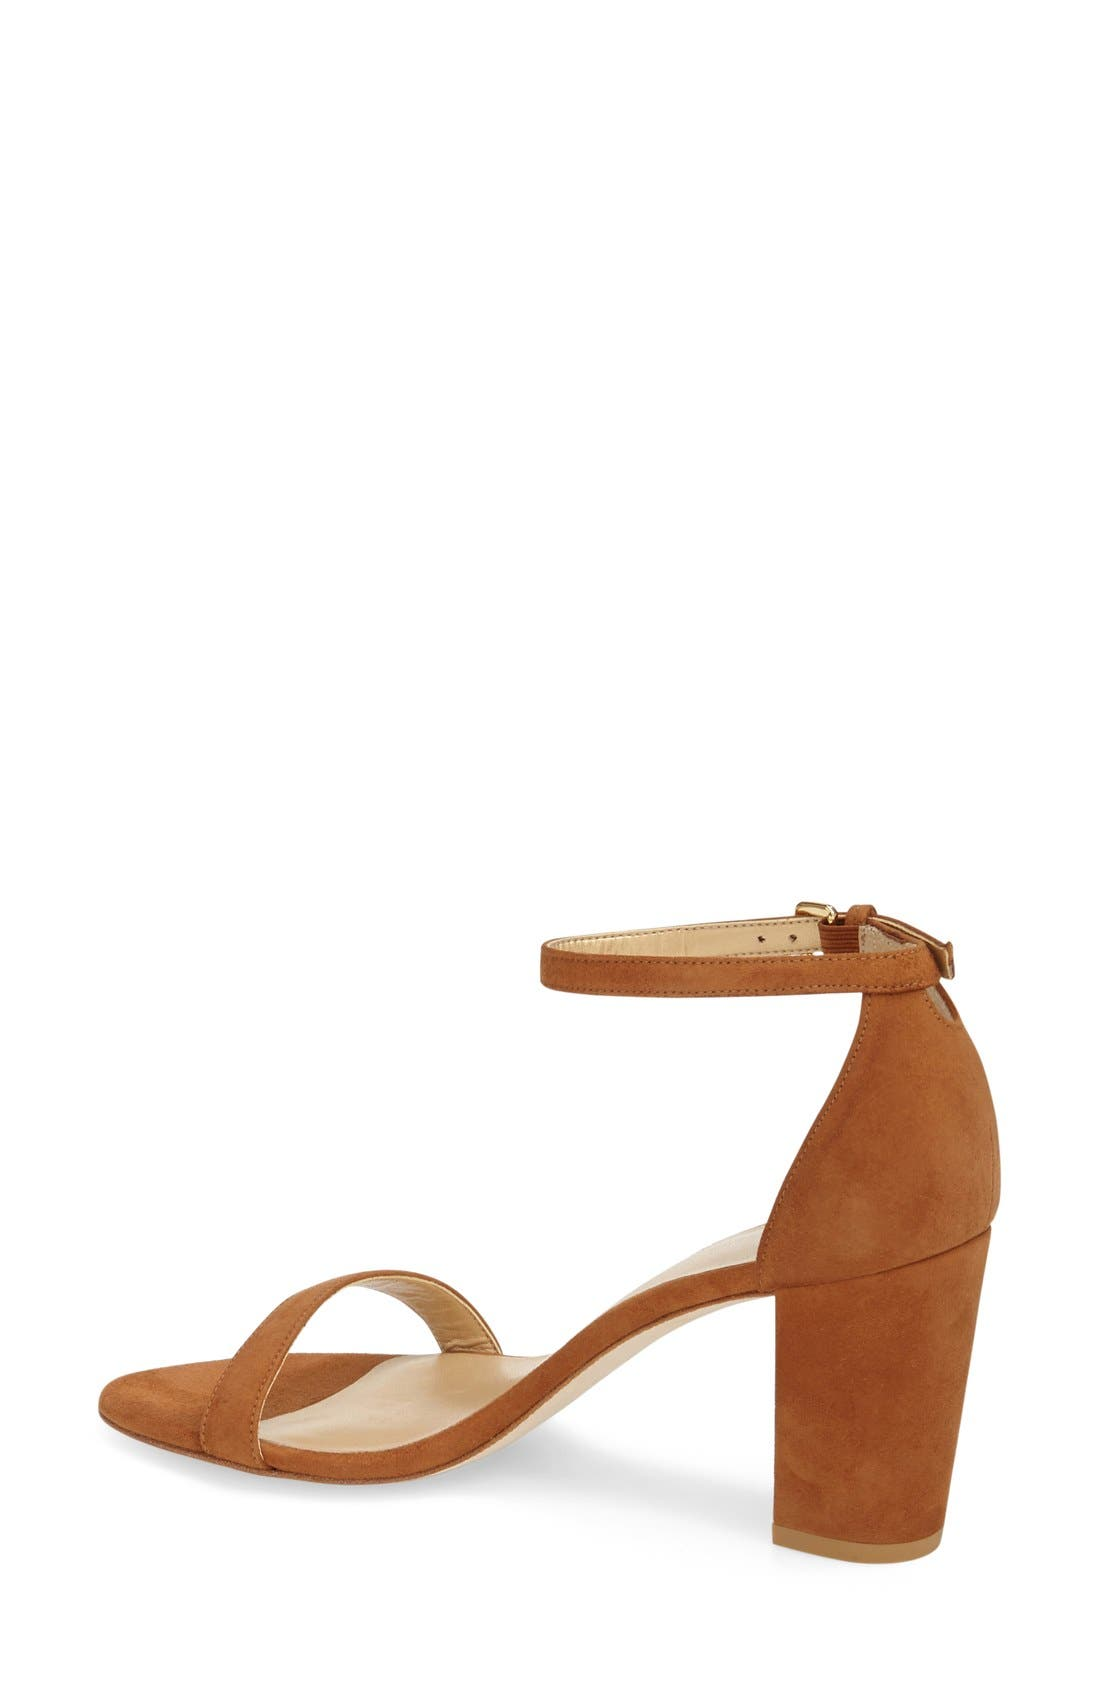 NearlyNude Ankle Strap Sandal,                             Alternate thumbnail 44, color,